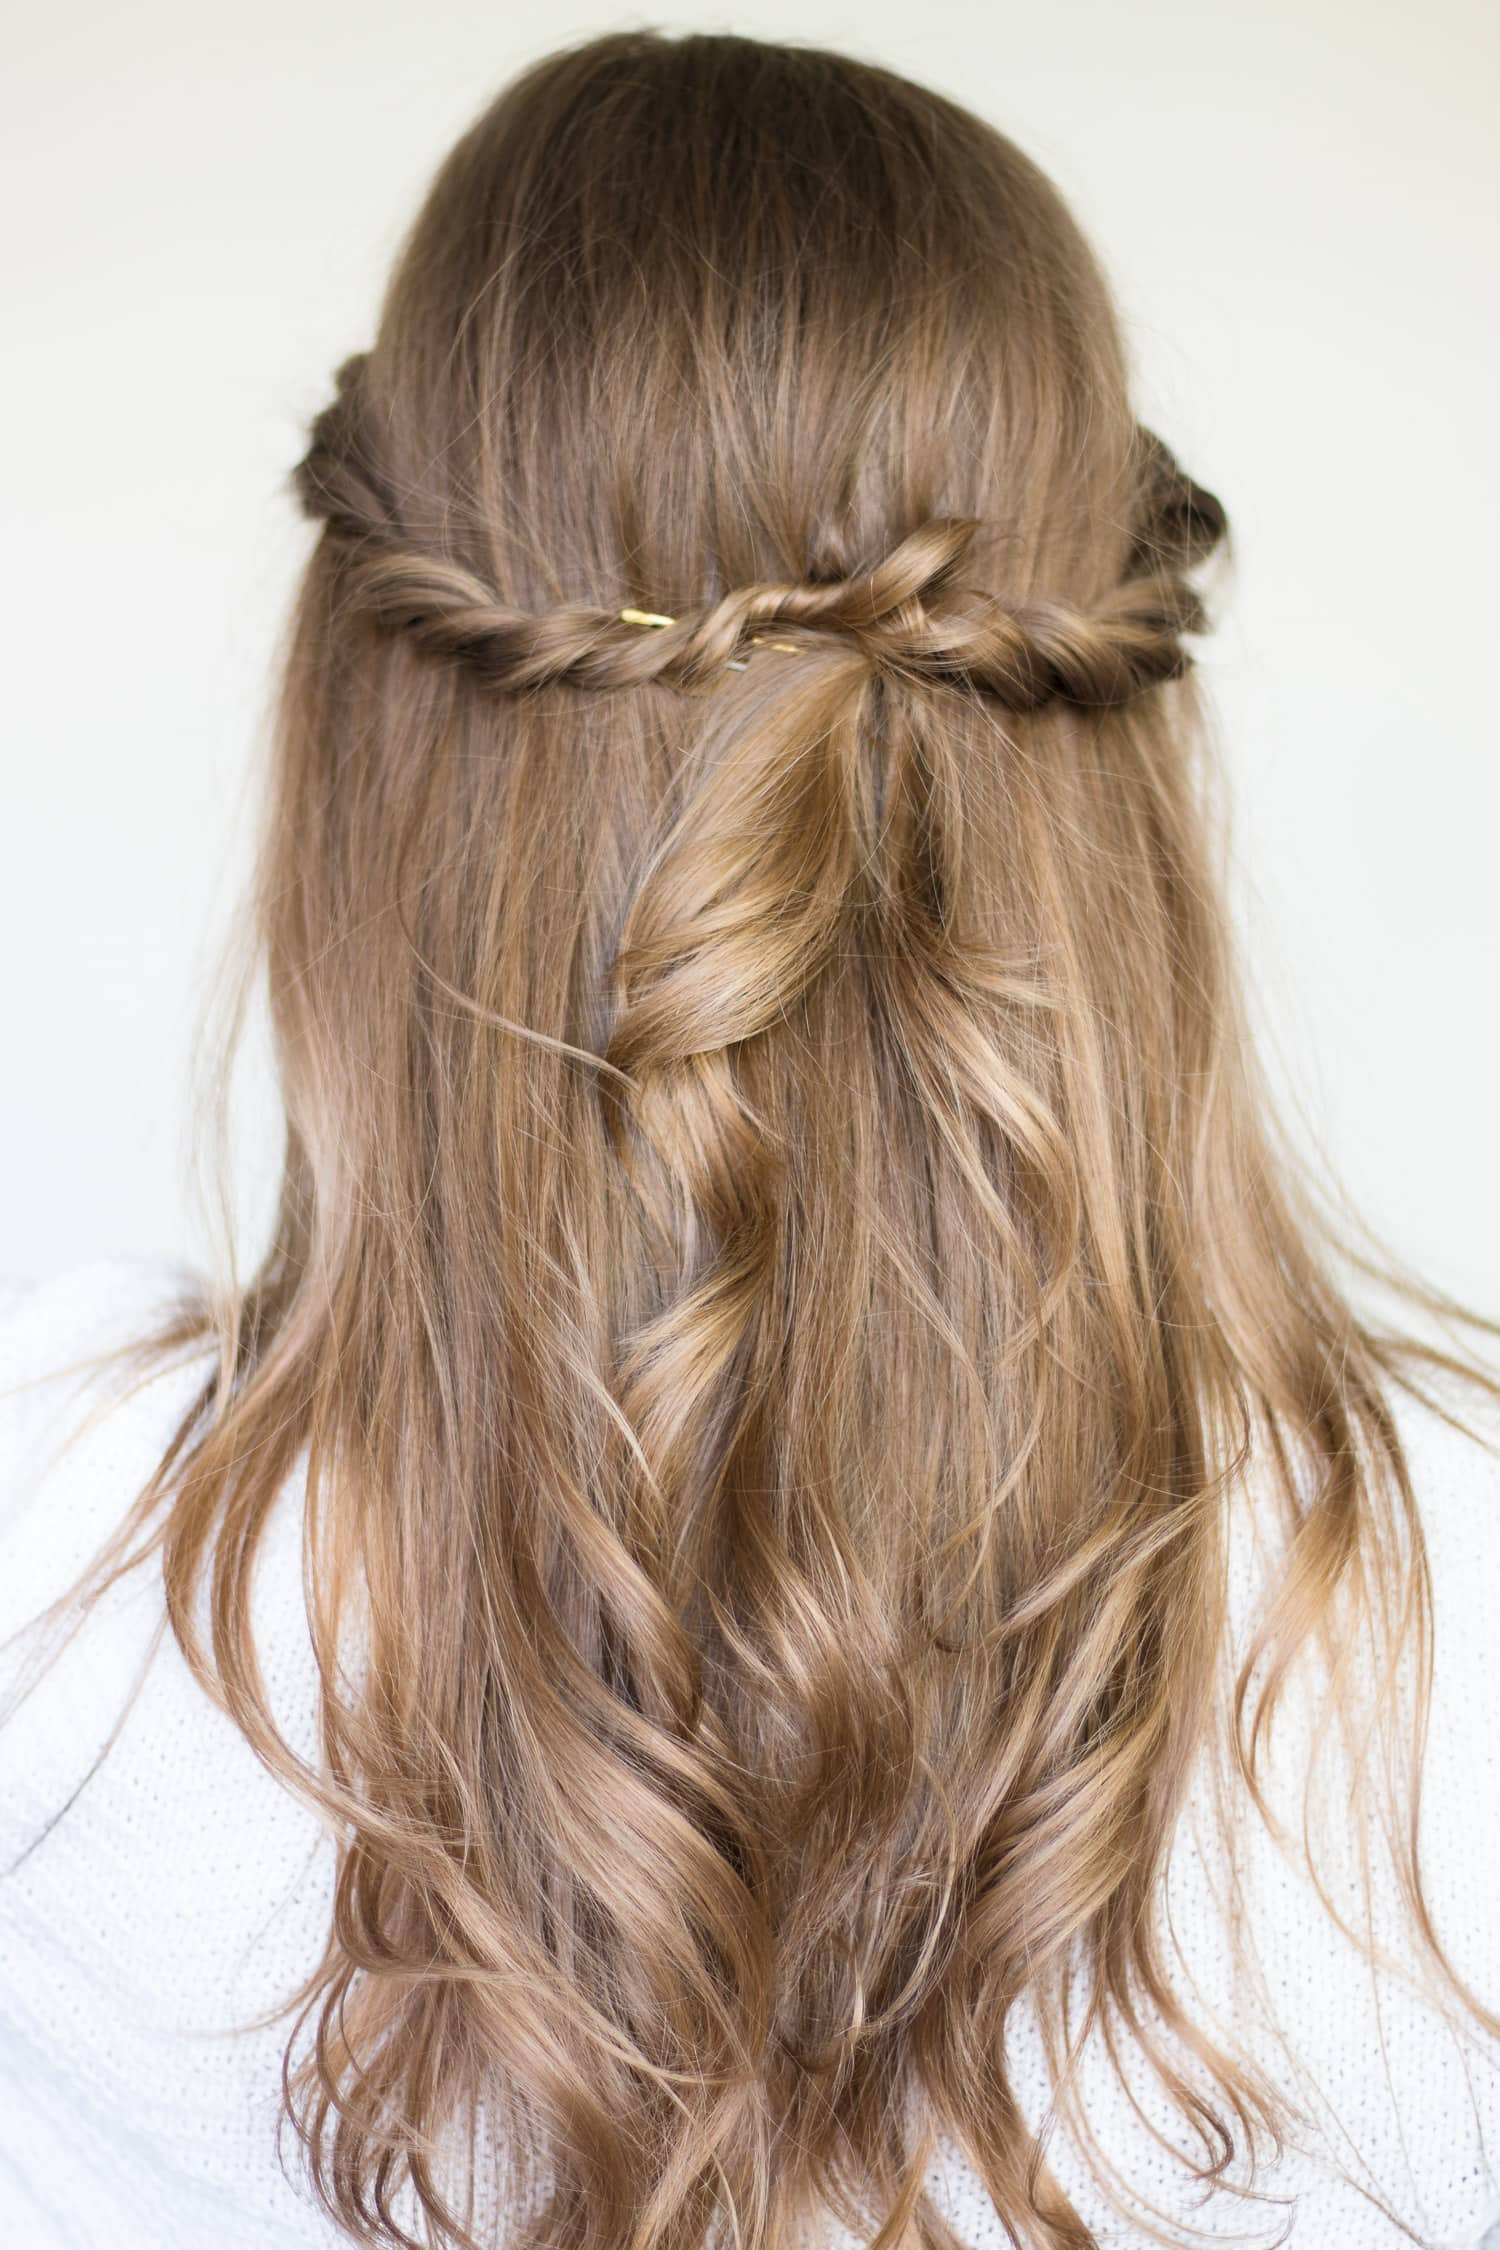 twisted-half-up-hair-style-tutorial-pantene-7316